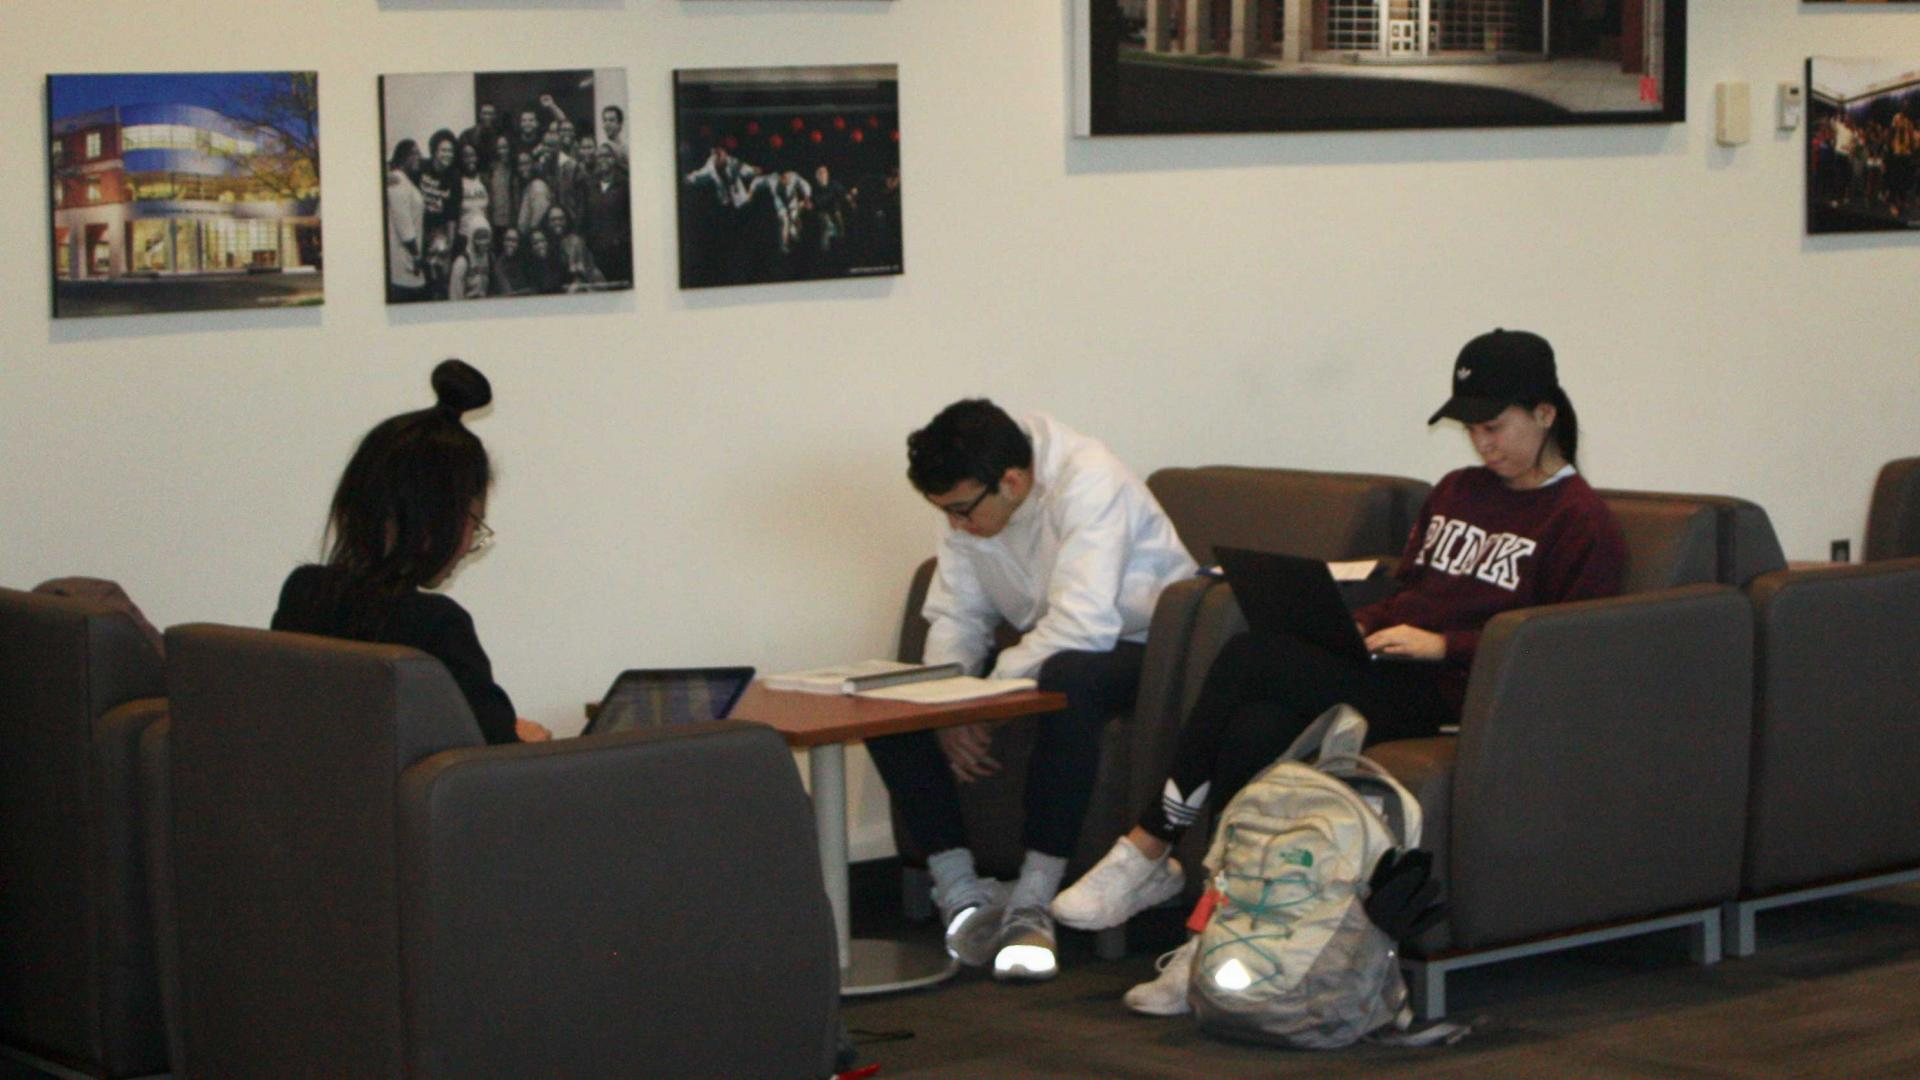 Students study in the Jackie Gaughan Multicultural Center